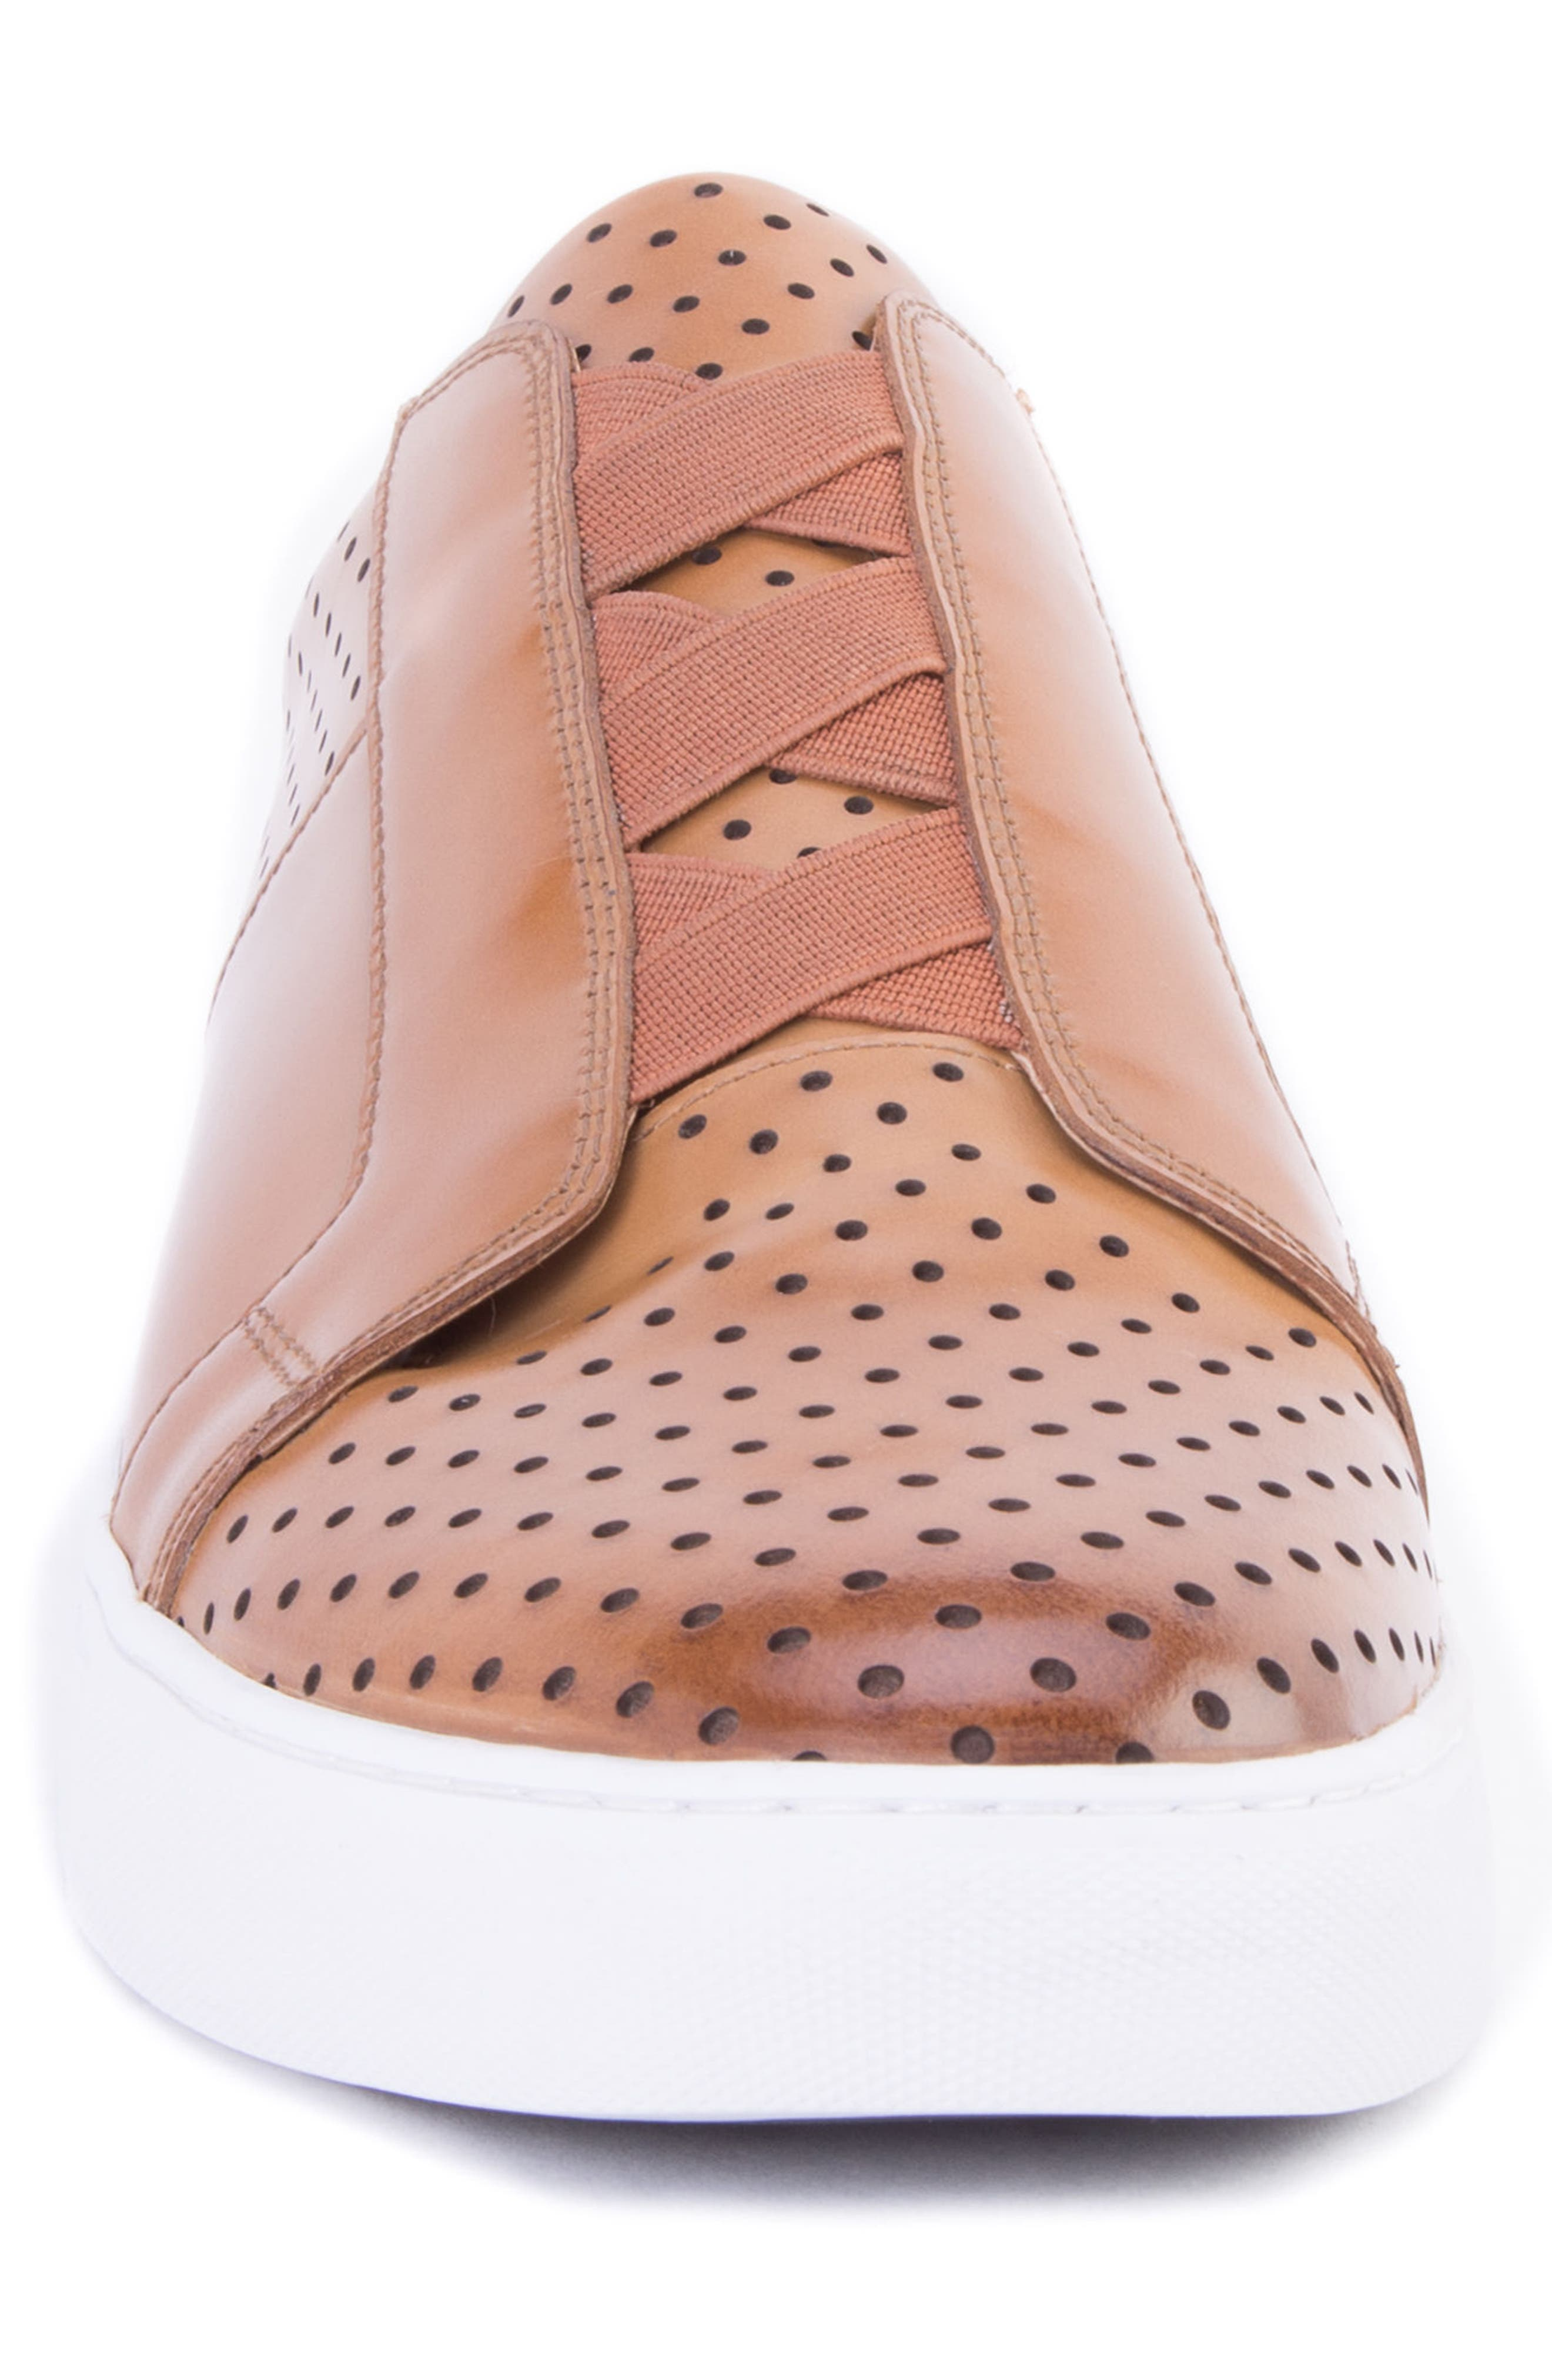 Rowley Perforated Laceless Sneaker,                             Alternate thumbnail 4, color,                             COGNAC LEATHER